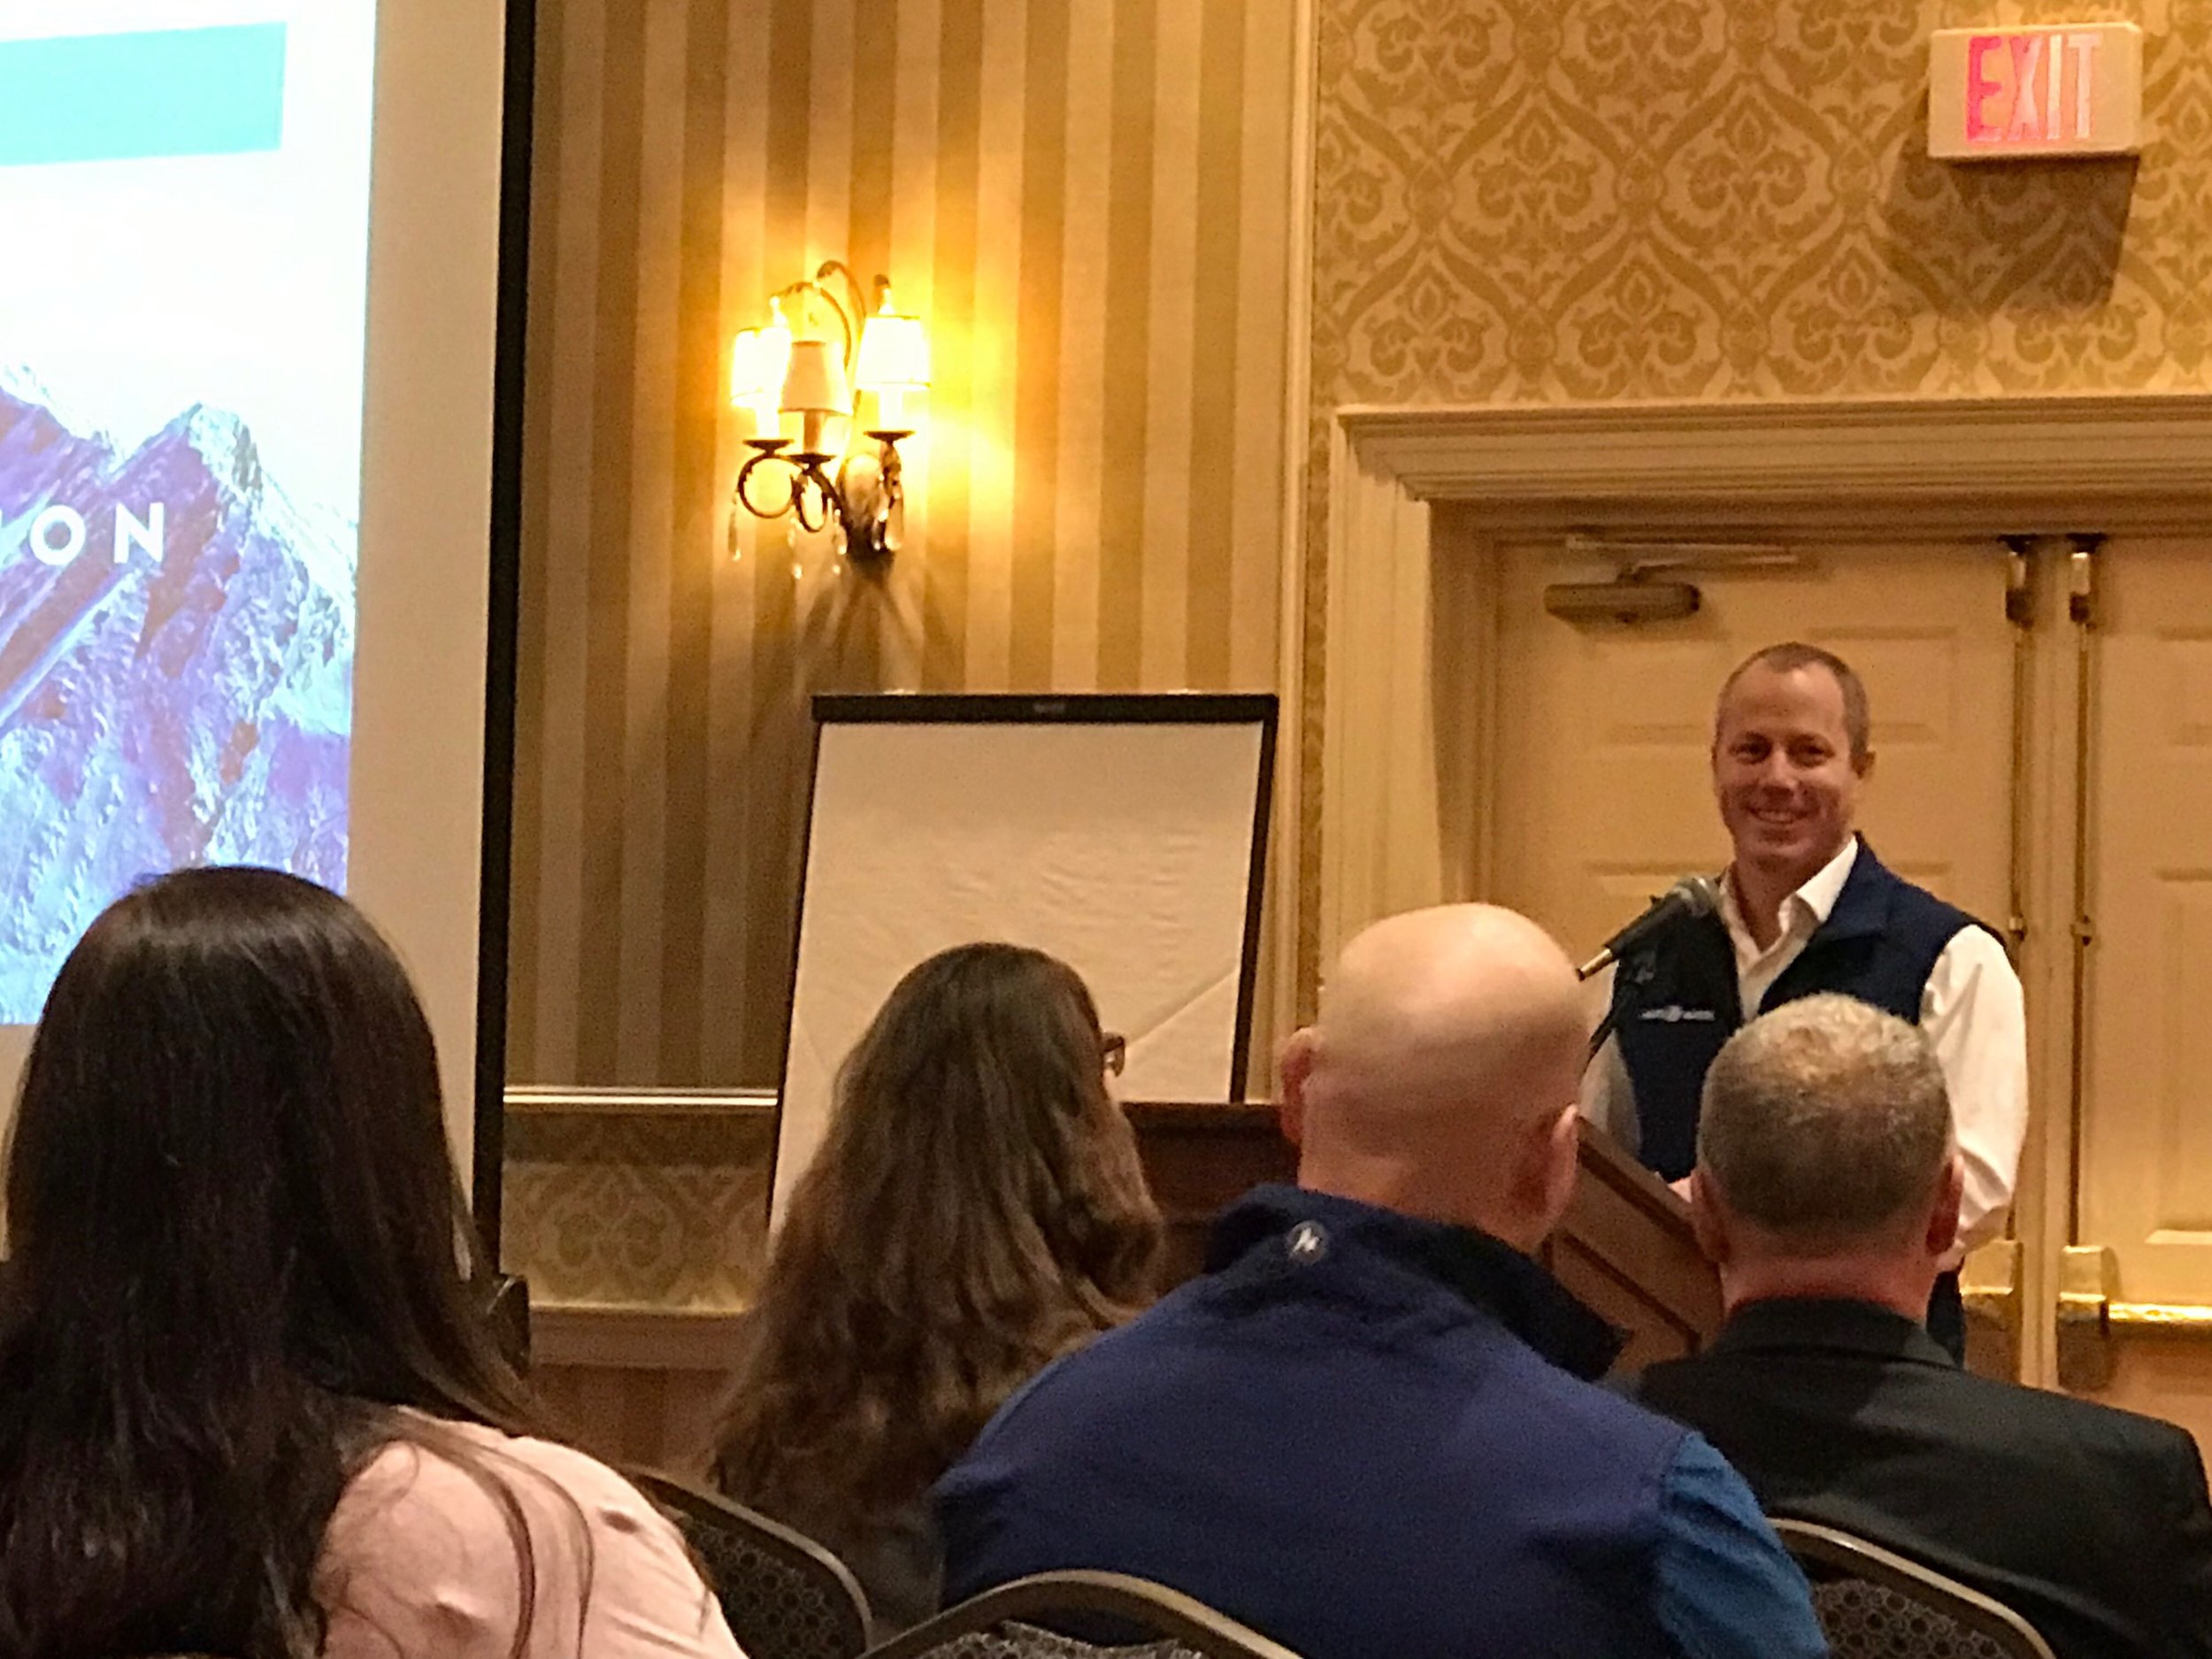 As a gold sponsor, Jason Lamb provided introductory remarks focused on the importance of aligning strategy, culture, and organizational design in order to allow best practices to take root in any organization.